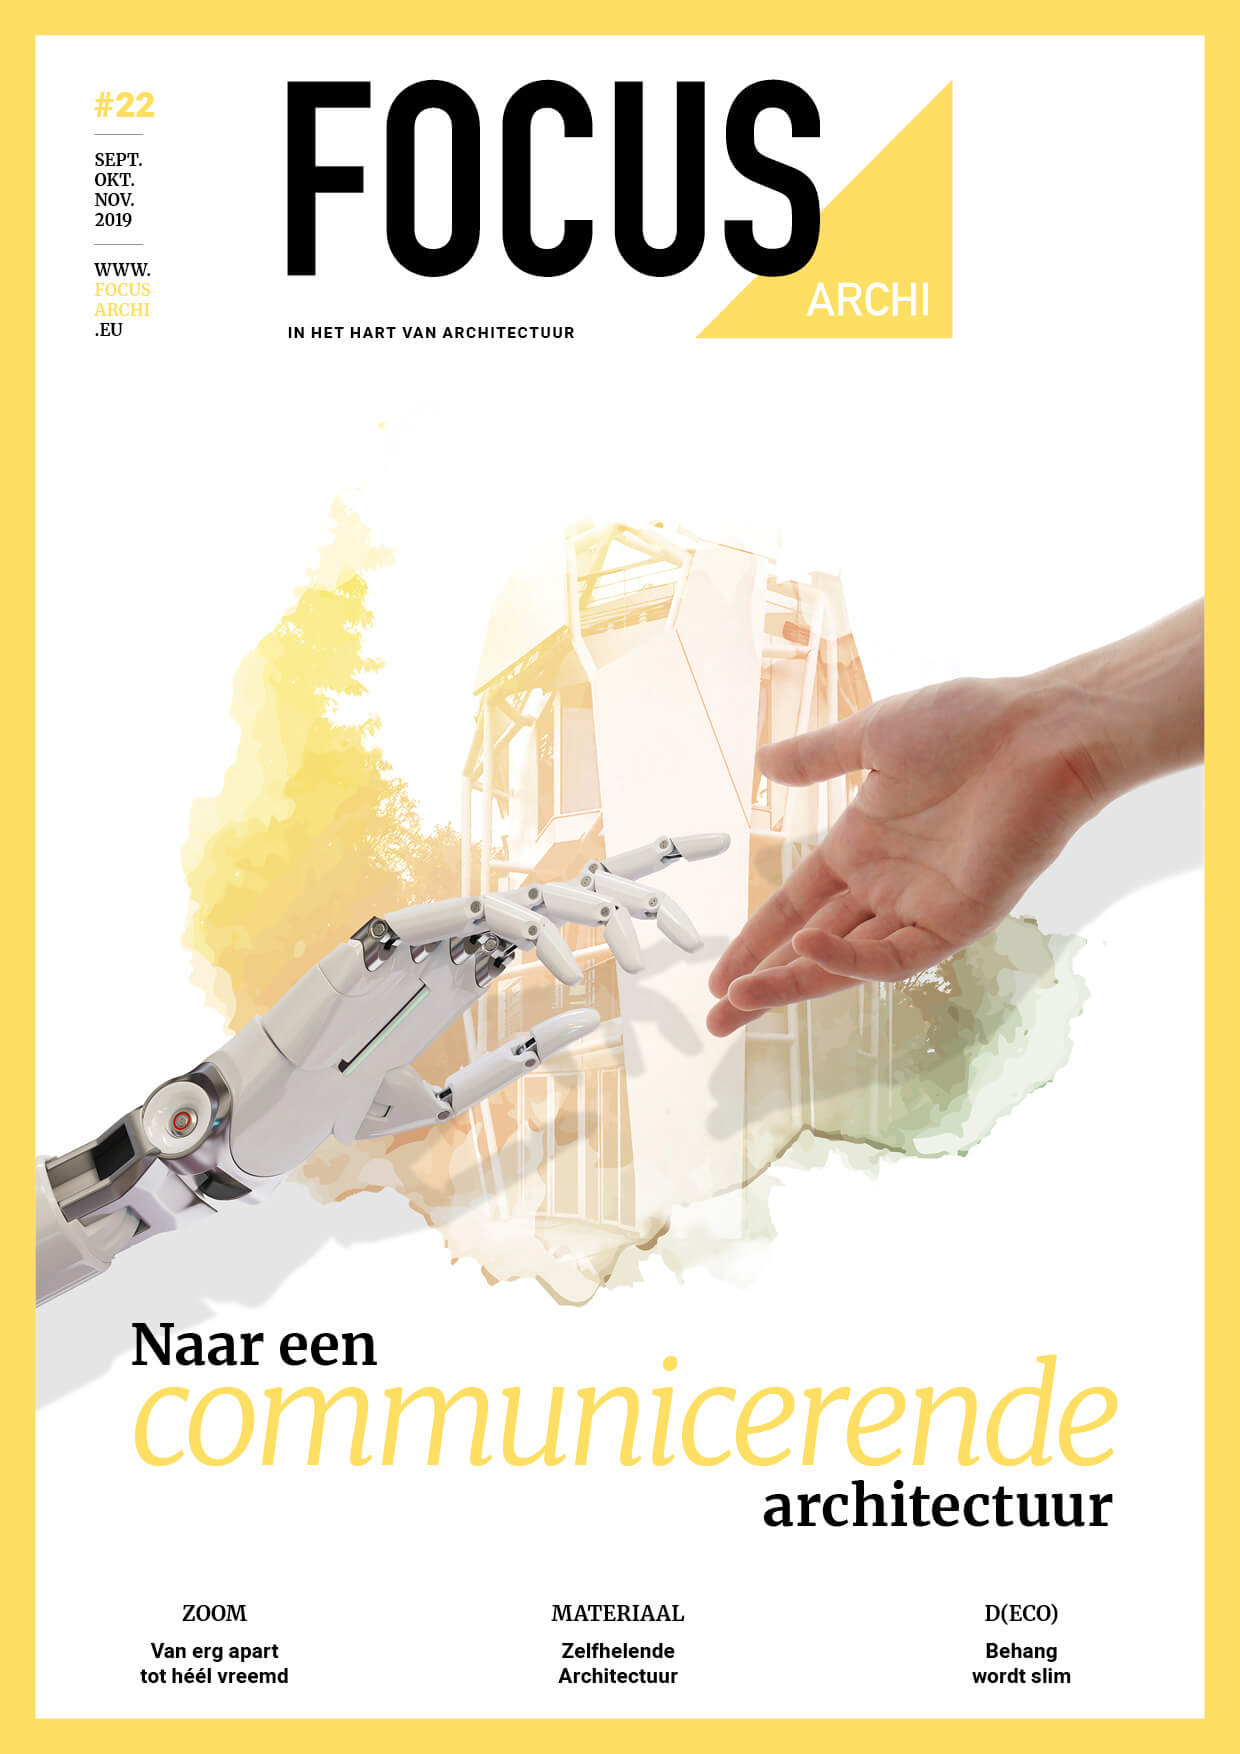 focus-archi-magazine-22-cover-nl.jpg